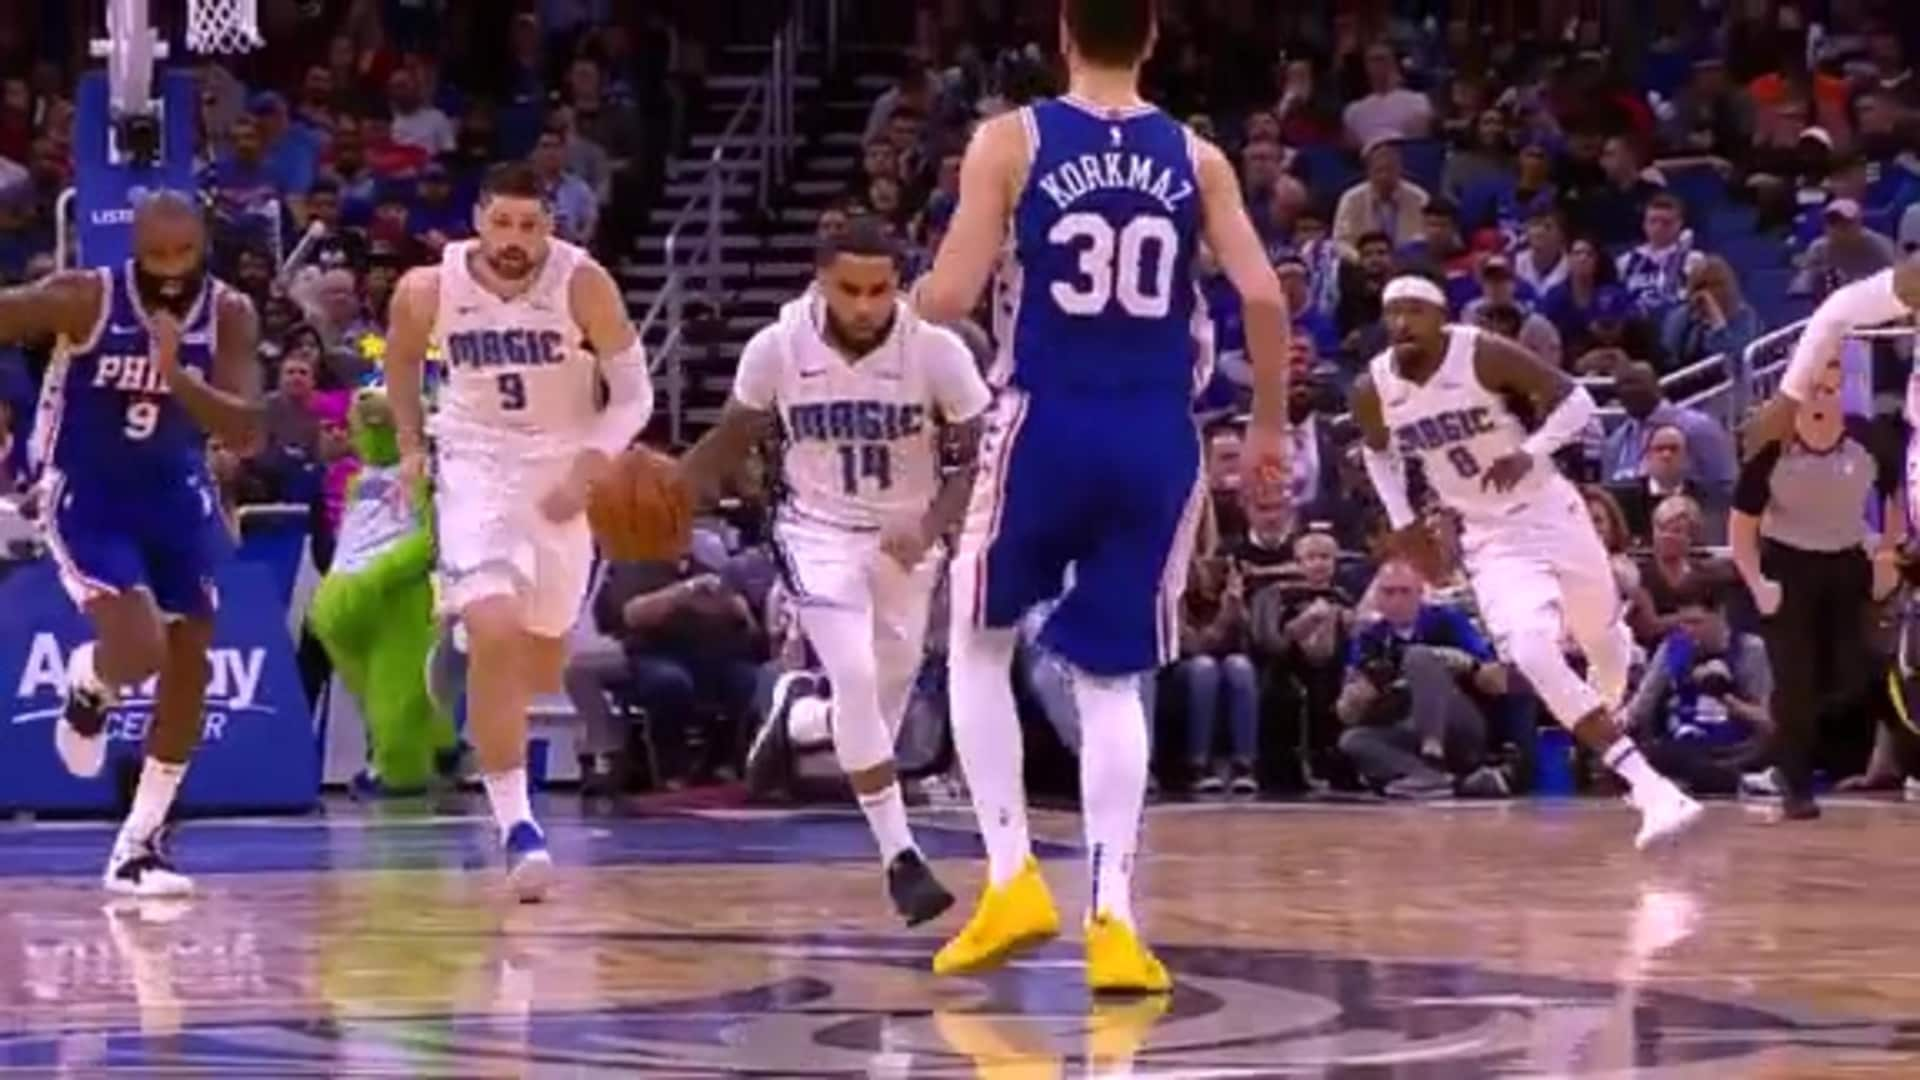 No Look: D.J. to MCW